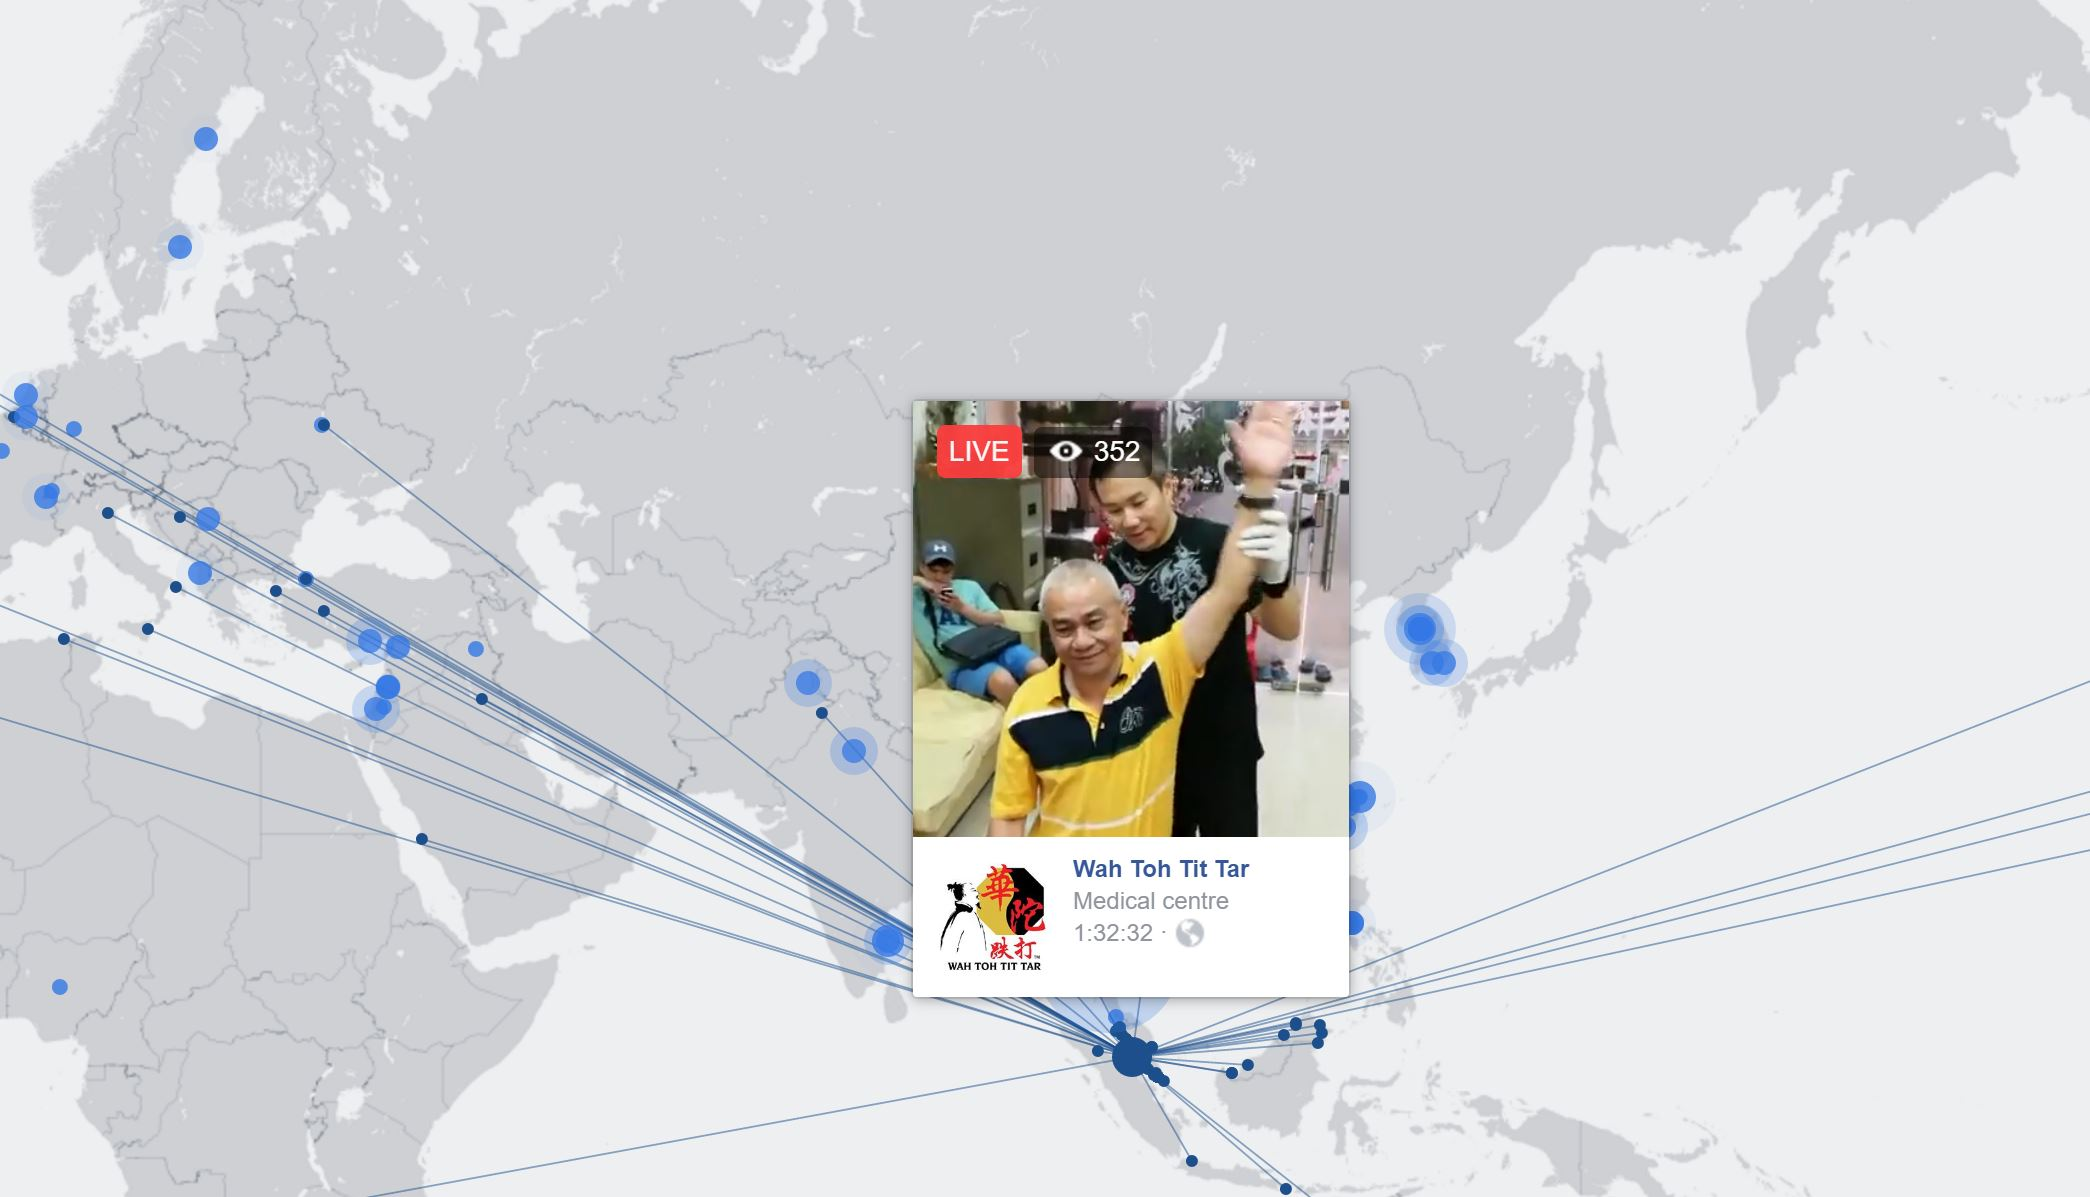 Example Facebook Live Video